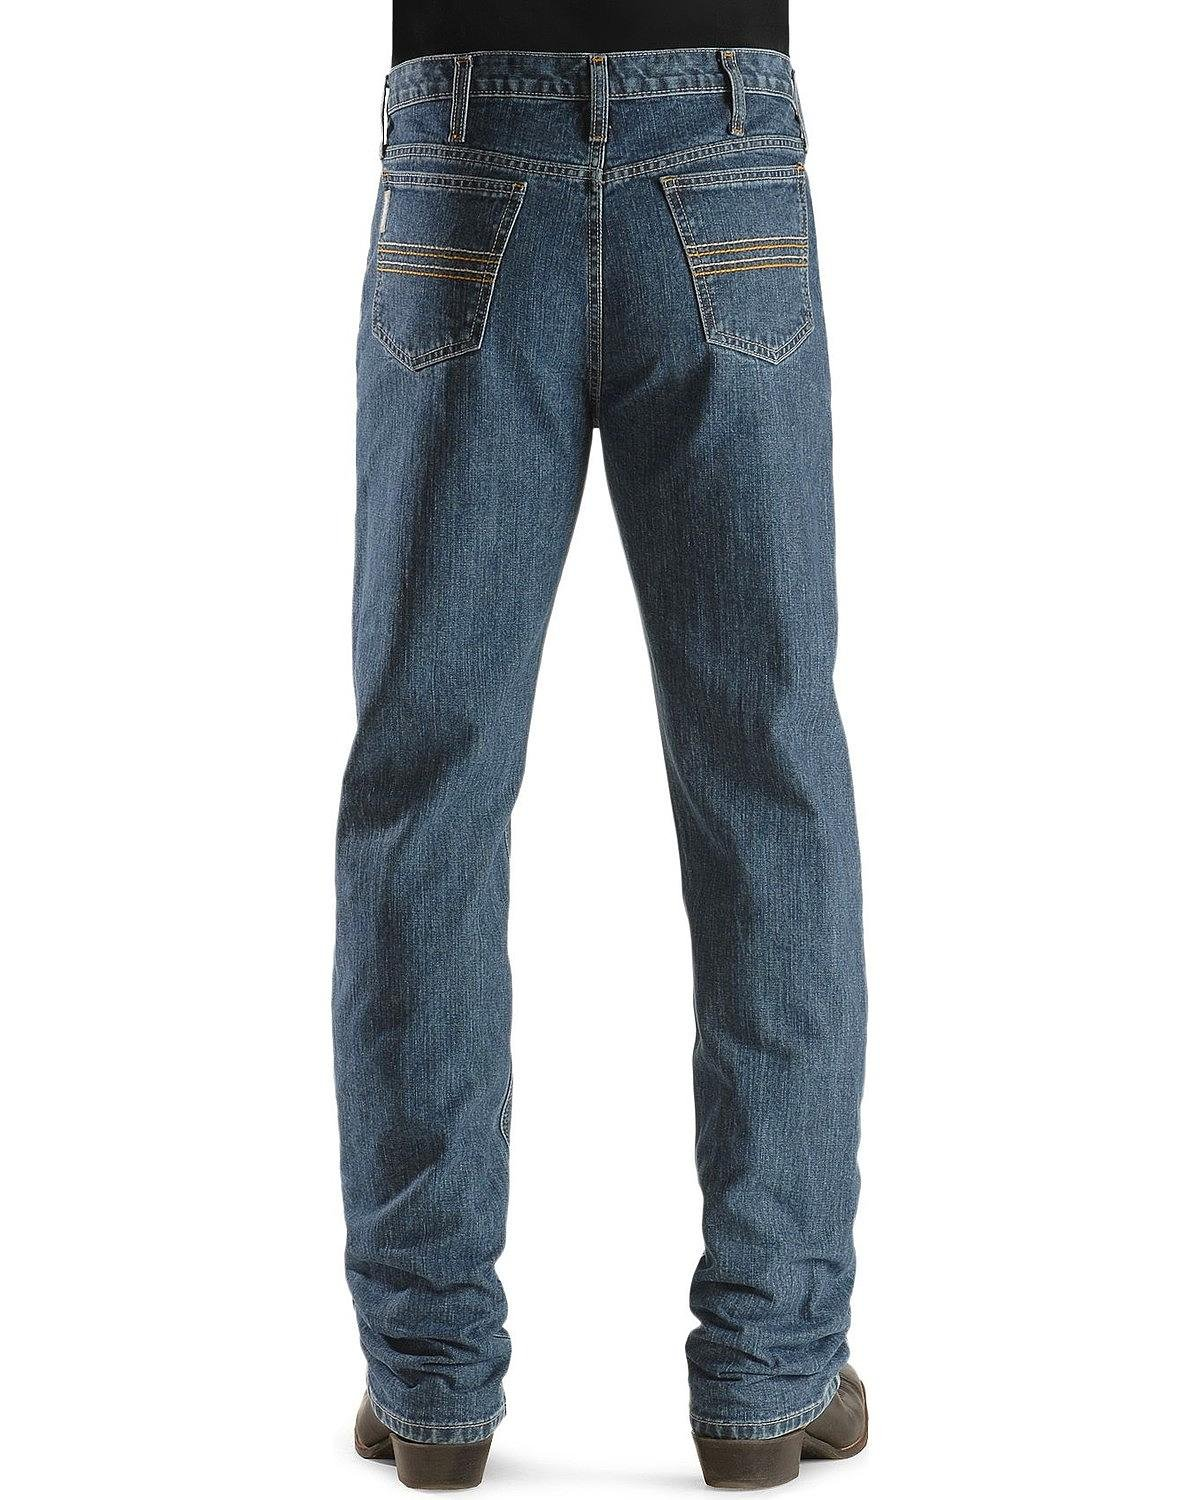 Cinch Men's Silver Label Straight Leg Jeans Big and Tall Indigo 34W x 38L